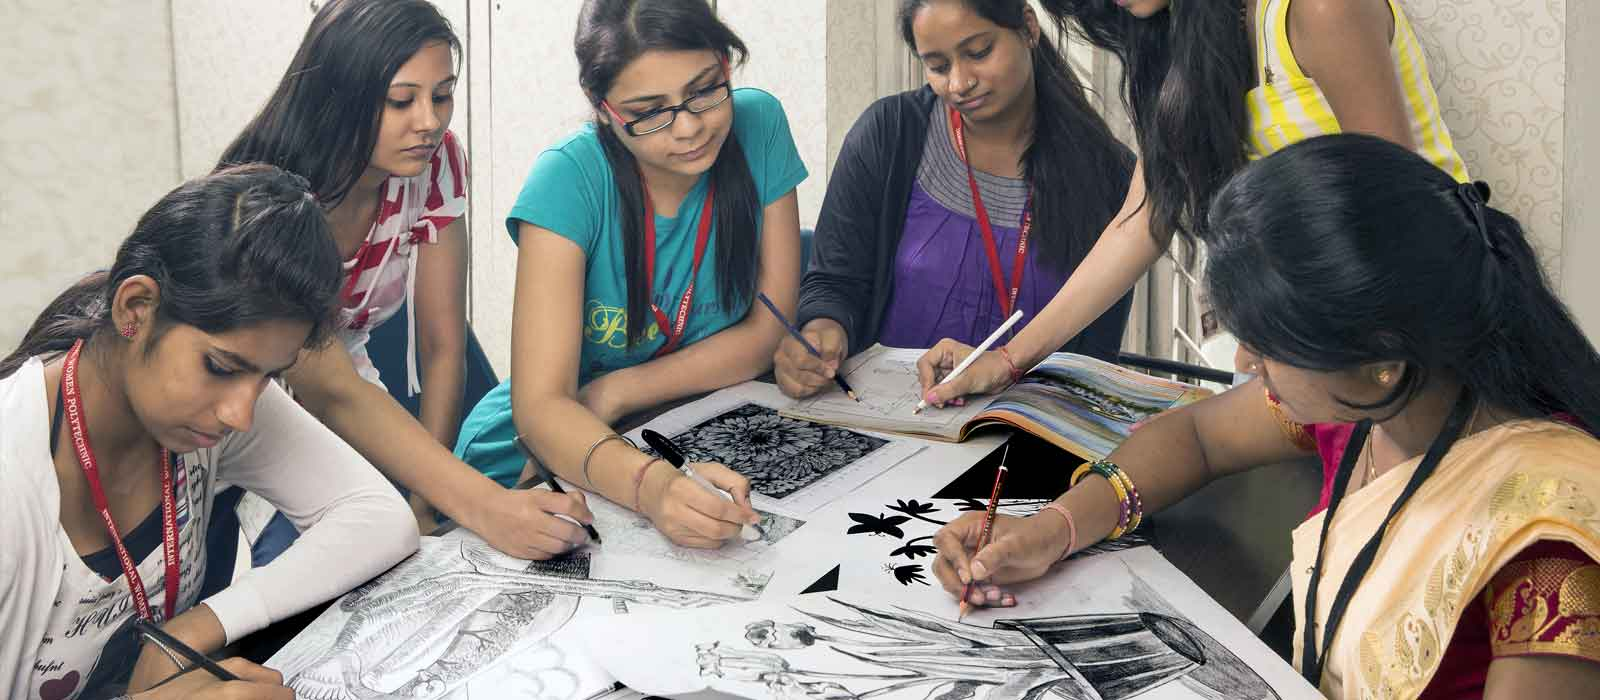 Beauty Fashion Job Training: Women Polytechnic For Fashion Designing Course, Interior